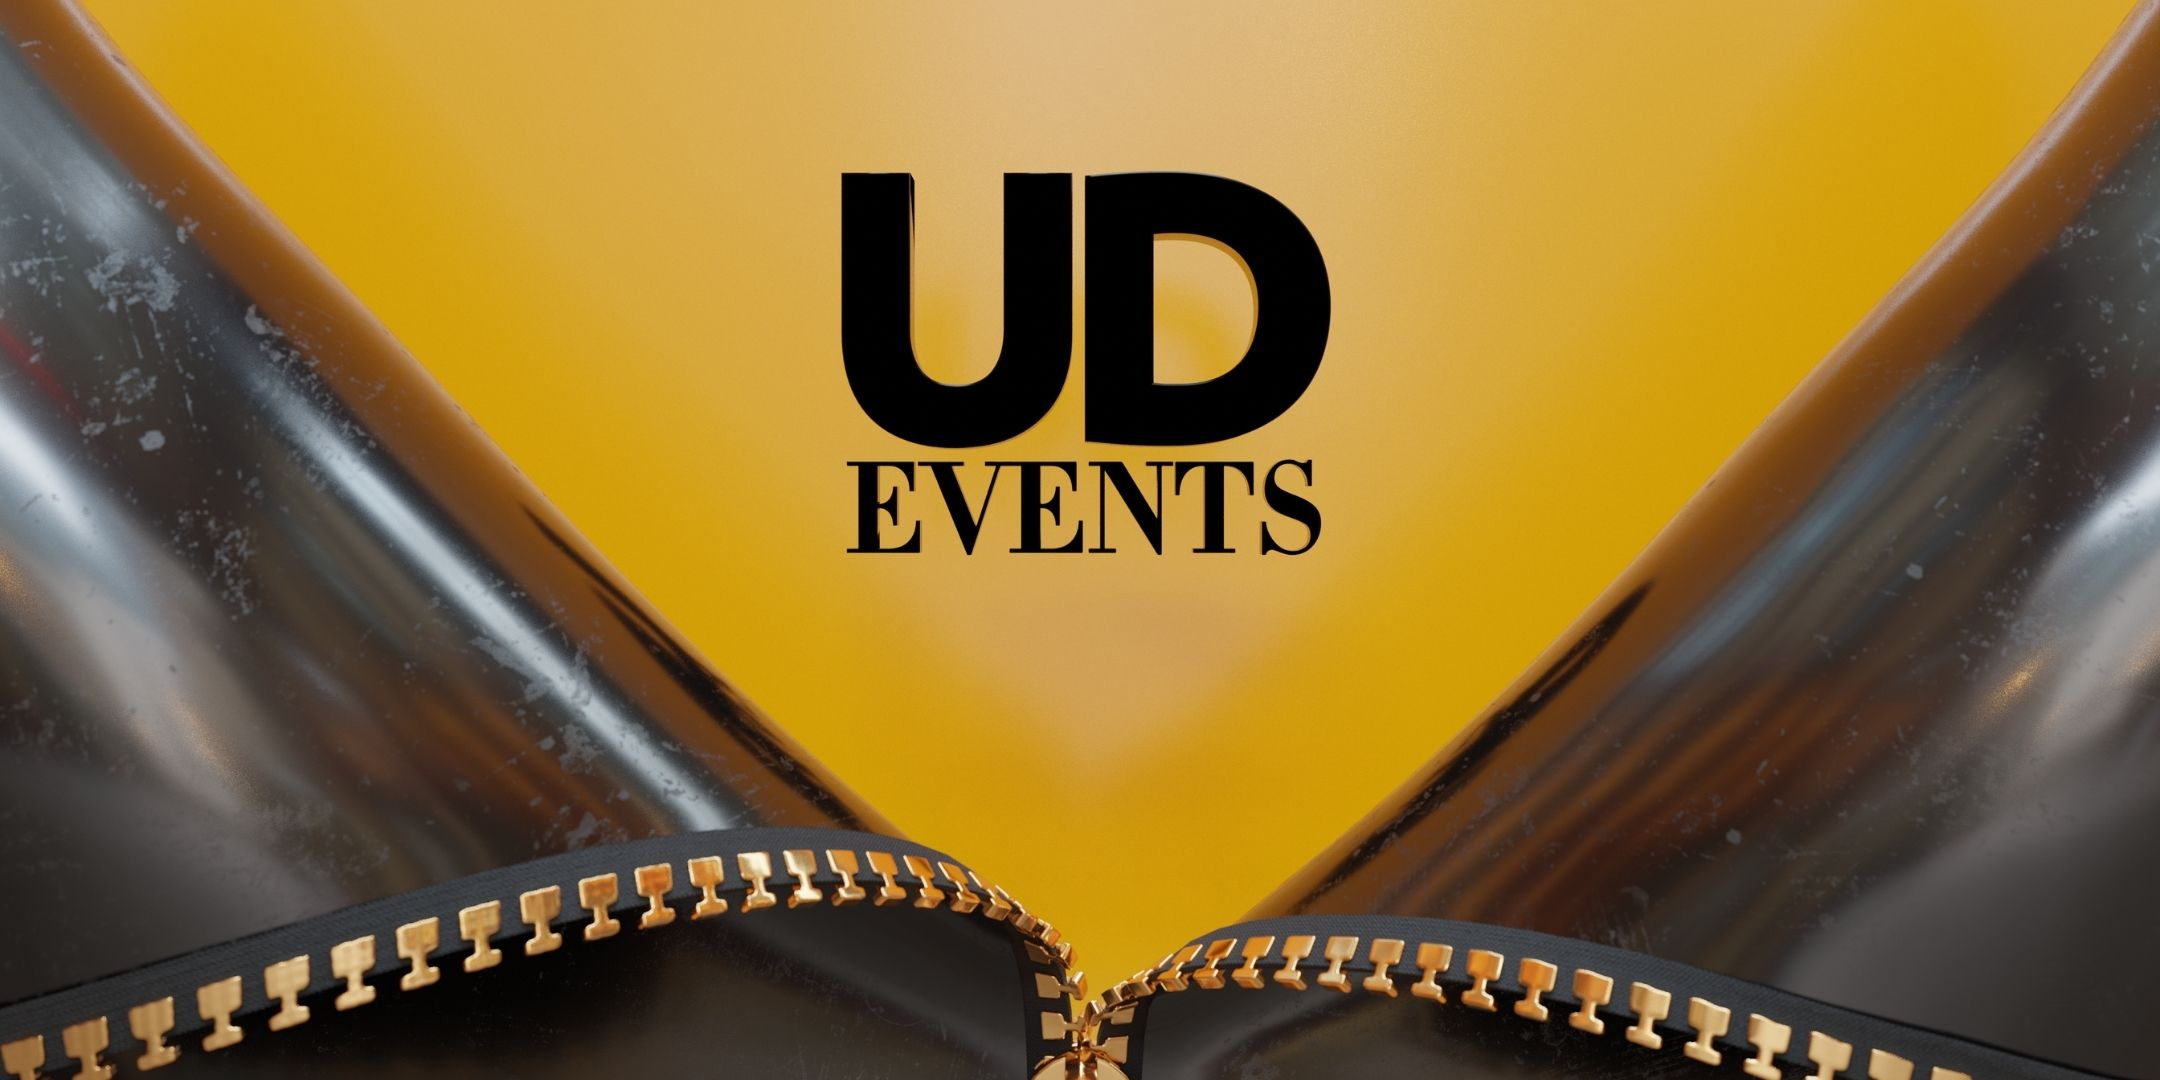 A leather jacket unzipped to reveal a yellowy orange background with the words UD events in black